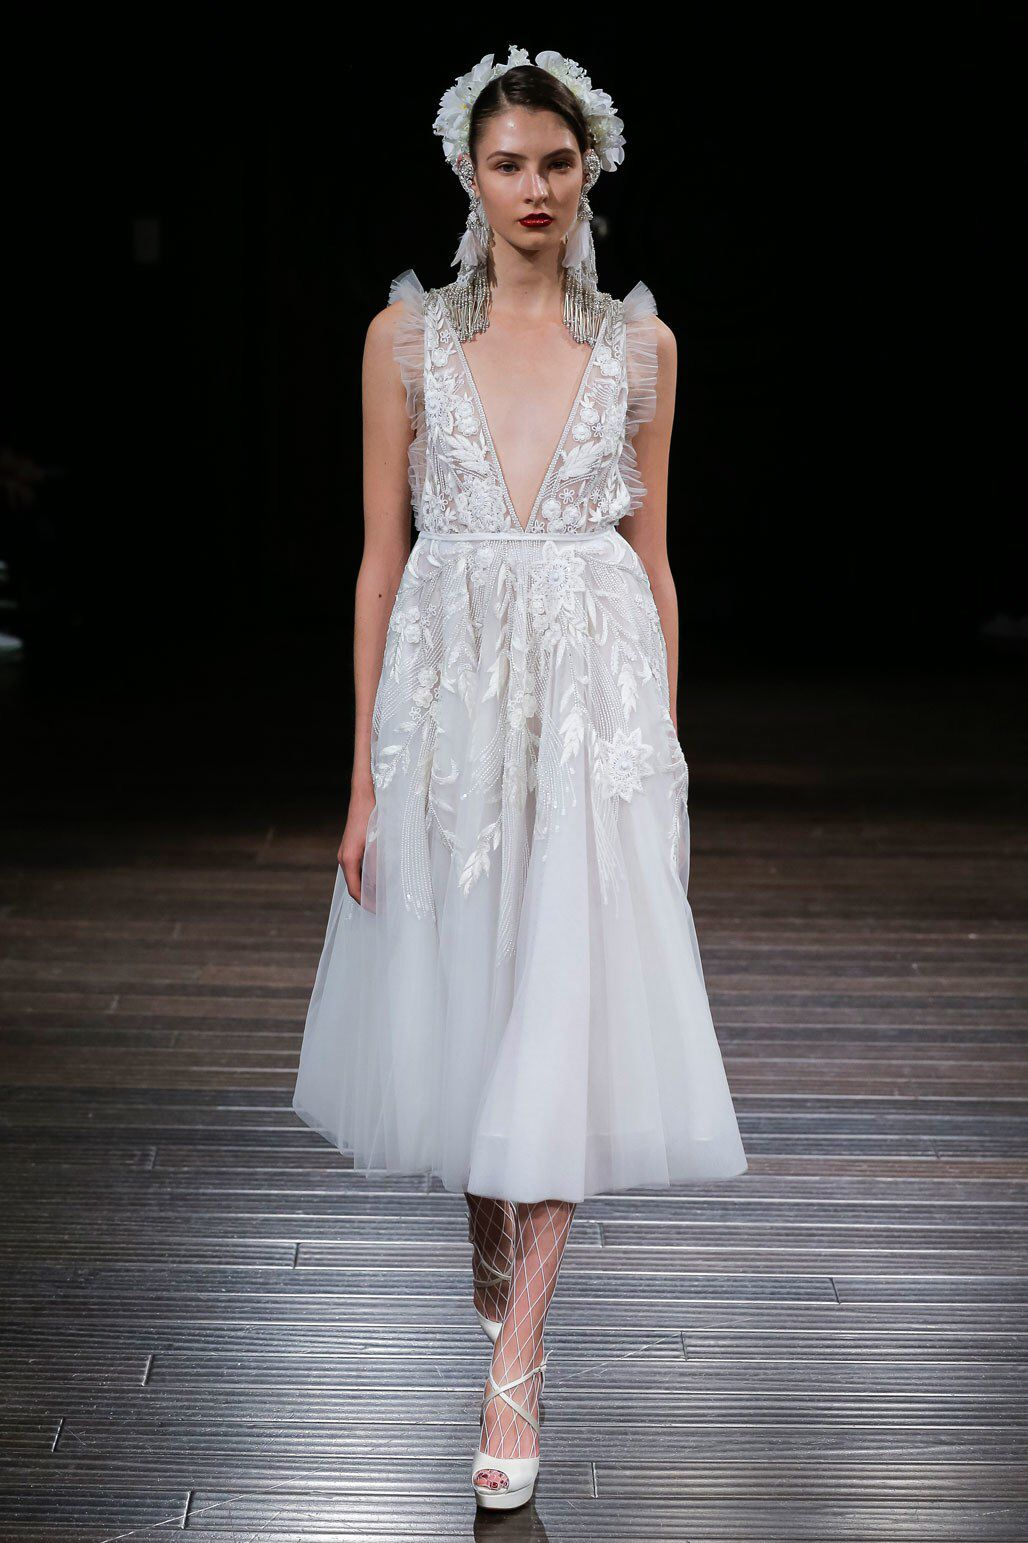 Naeem khan bridal fall fashion show collection casamento da